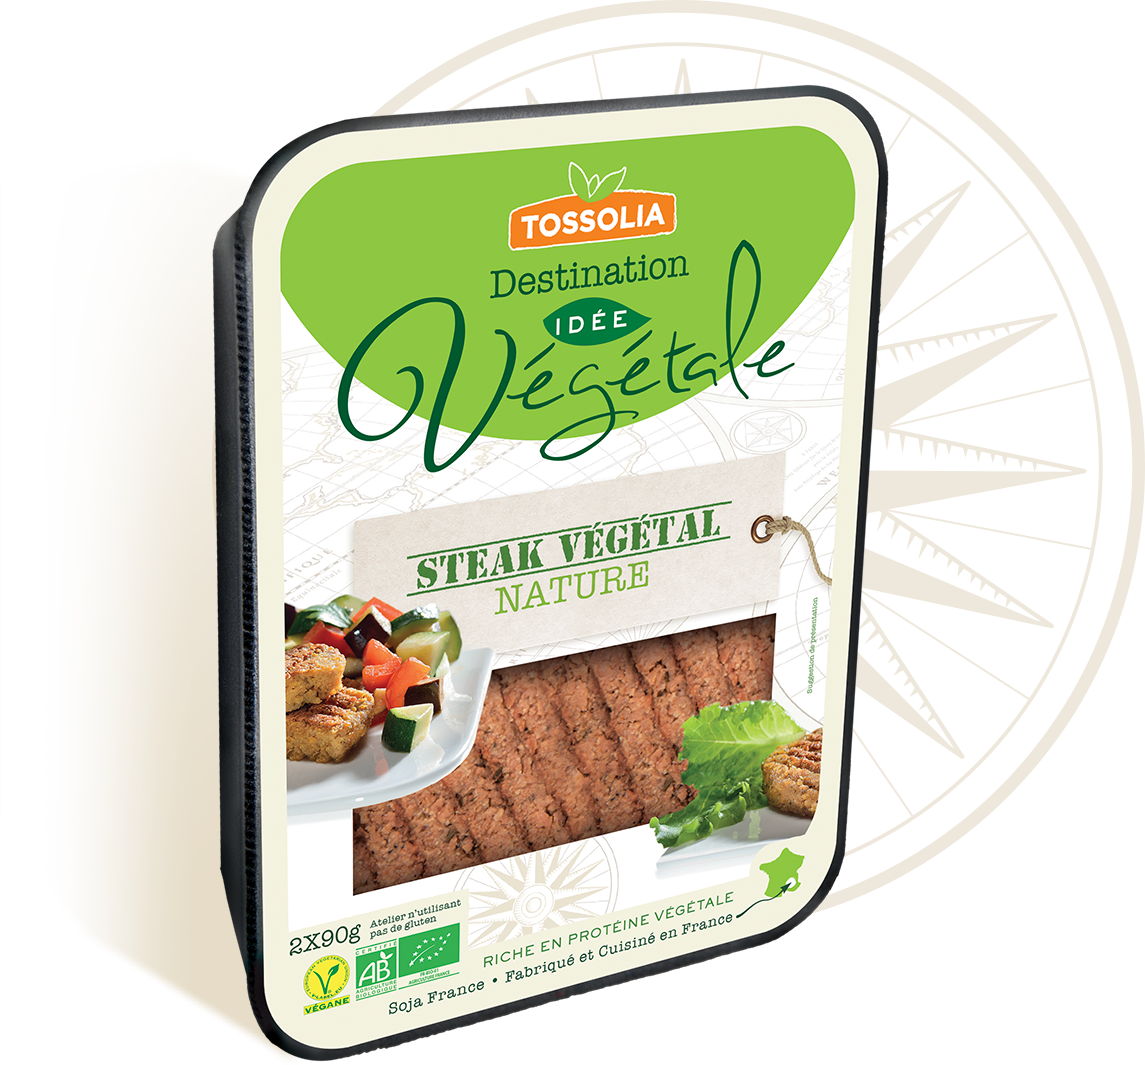 Steak végétal nature